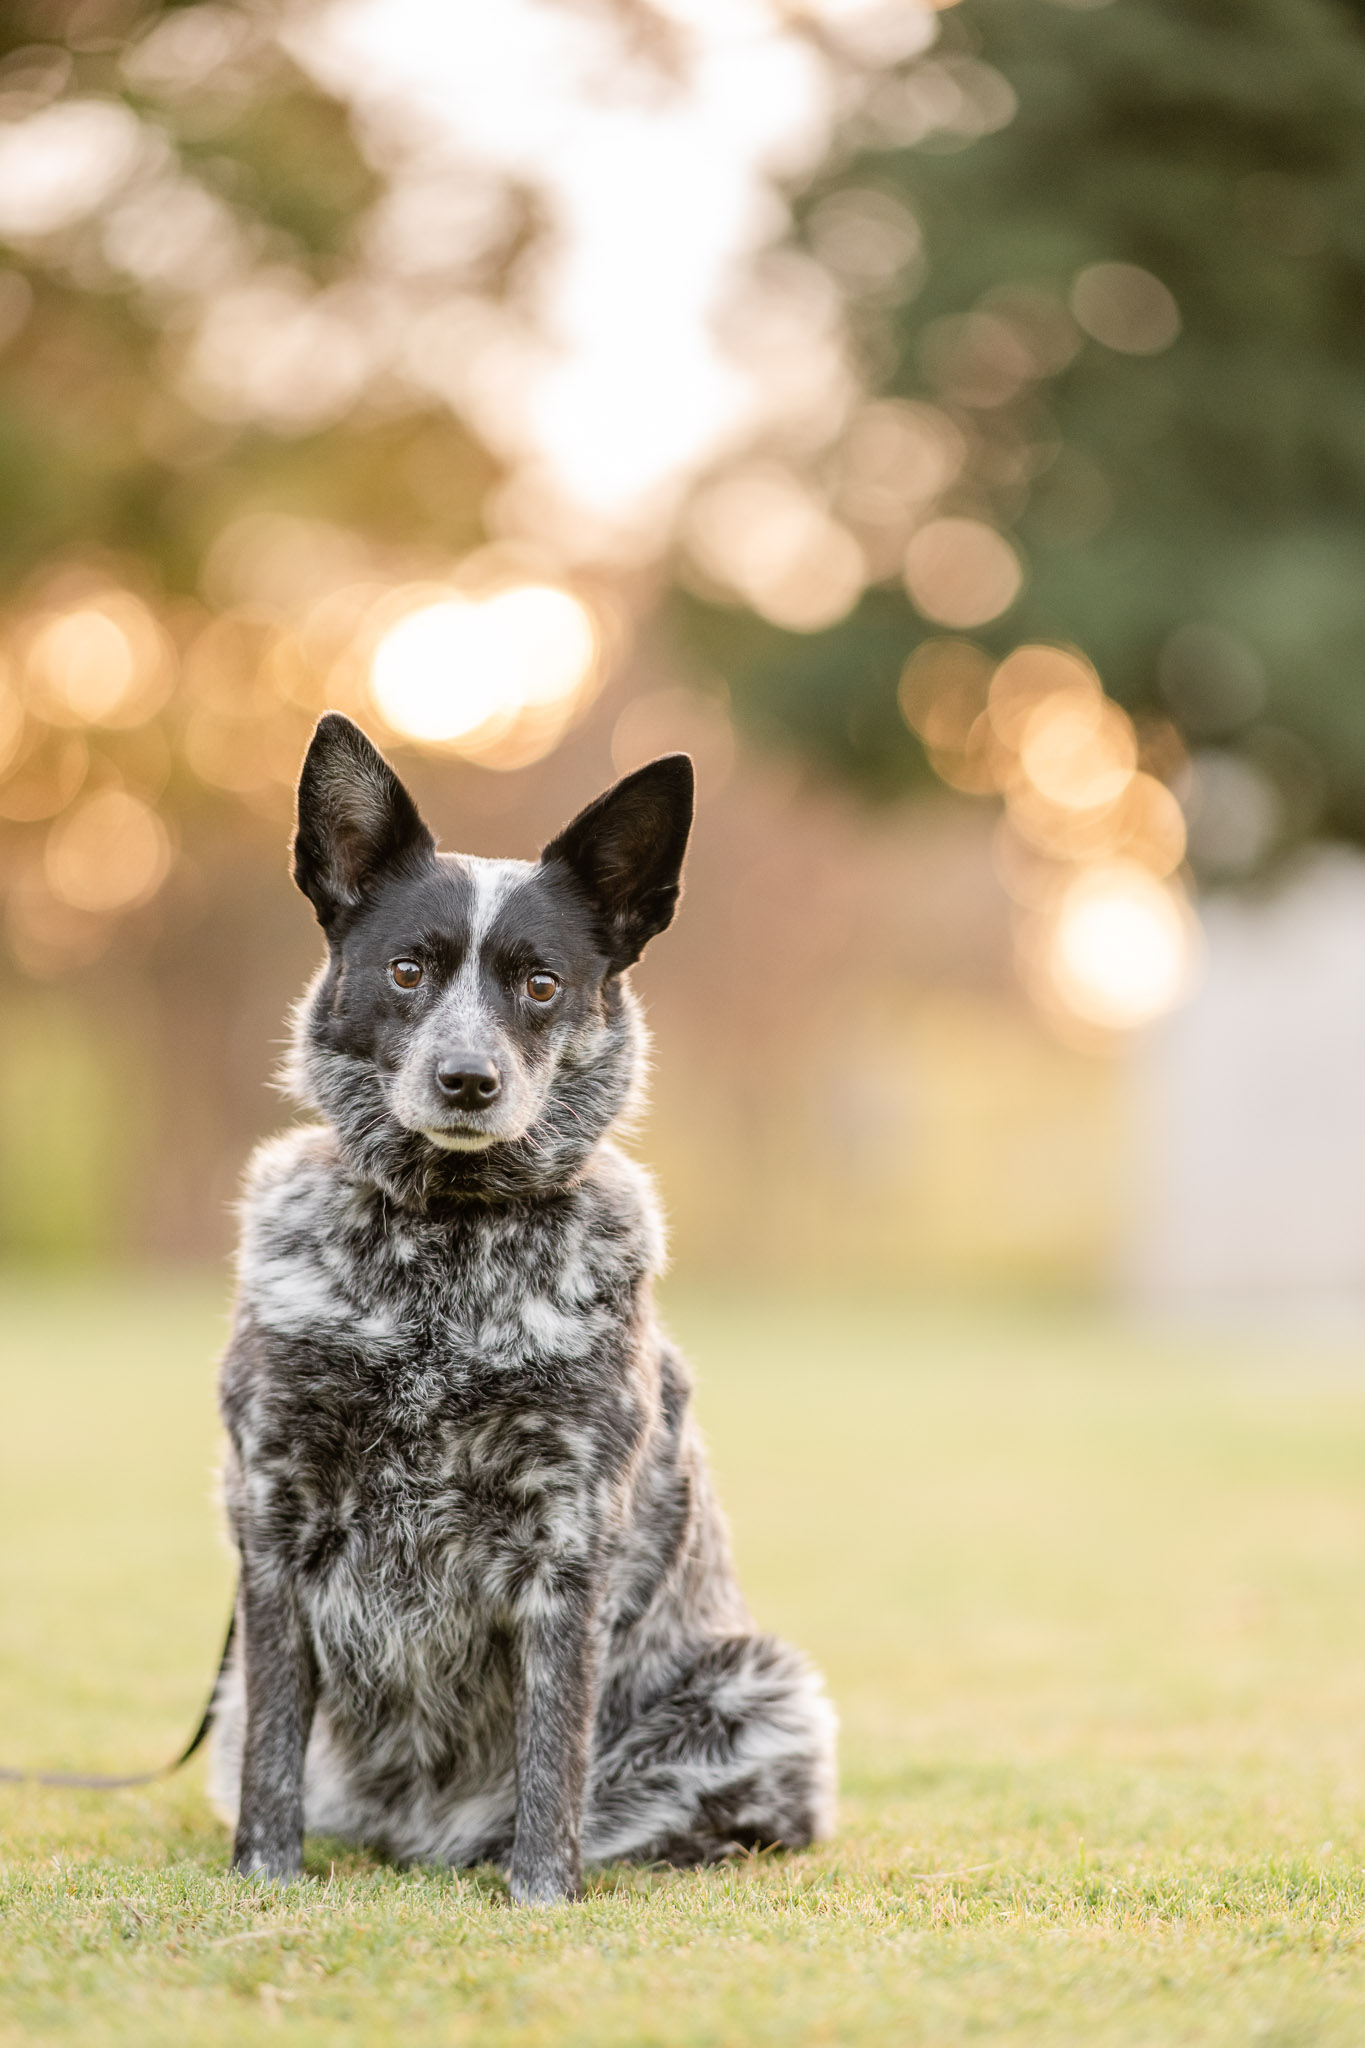 Atlanta pet photographer, Courtney Bryson, shares the top 5 must have photos from your pet photography session.